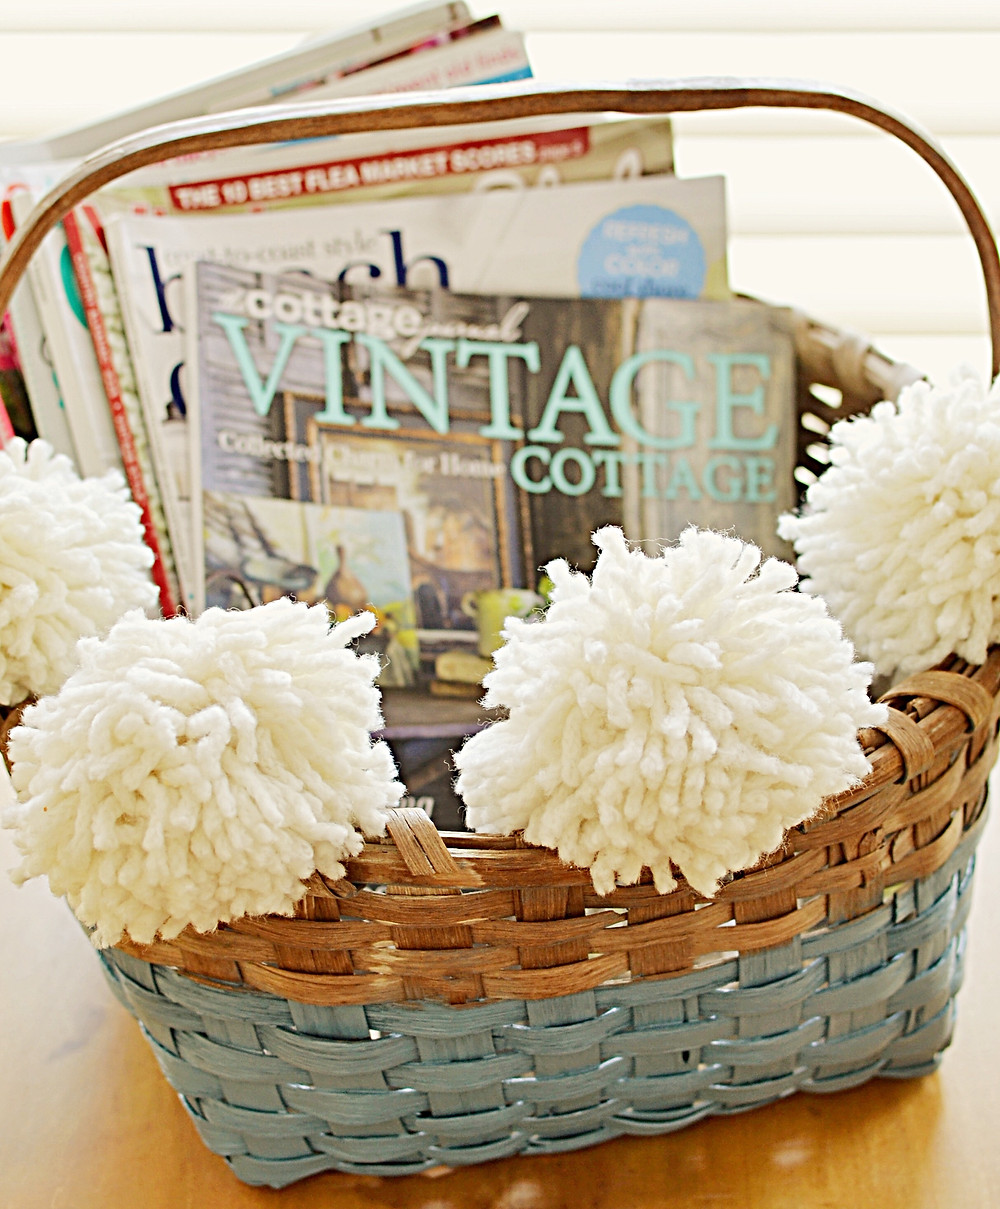 Vintage basket with pom poms and blue paint